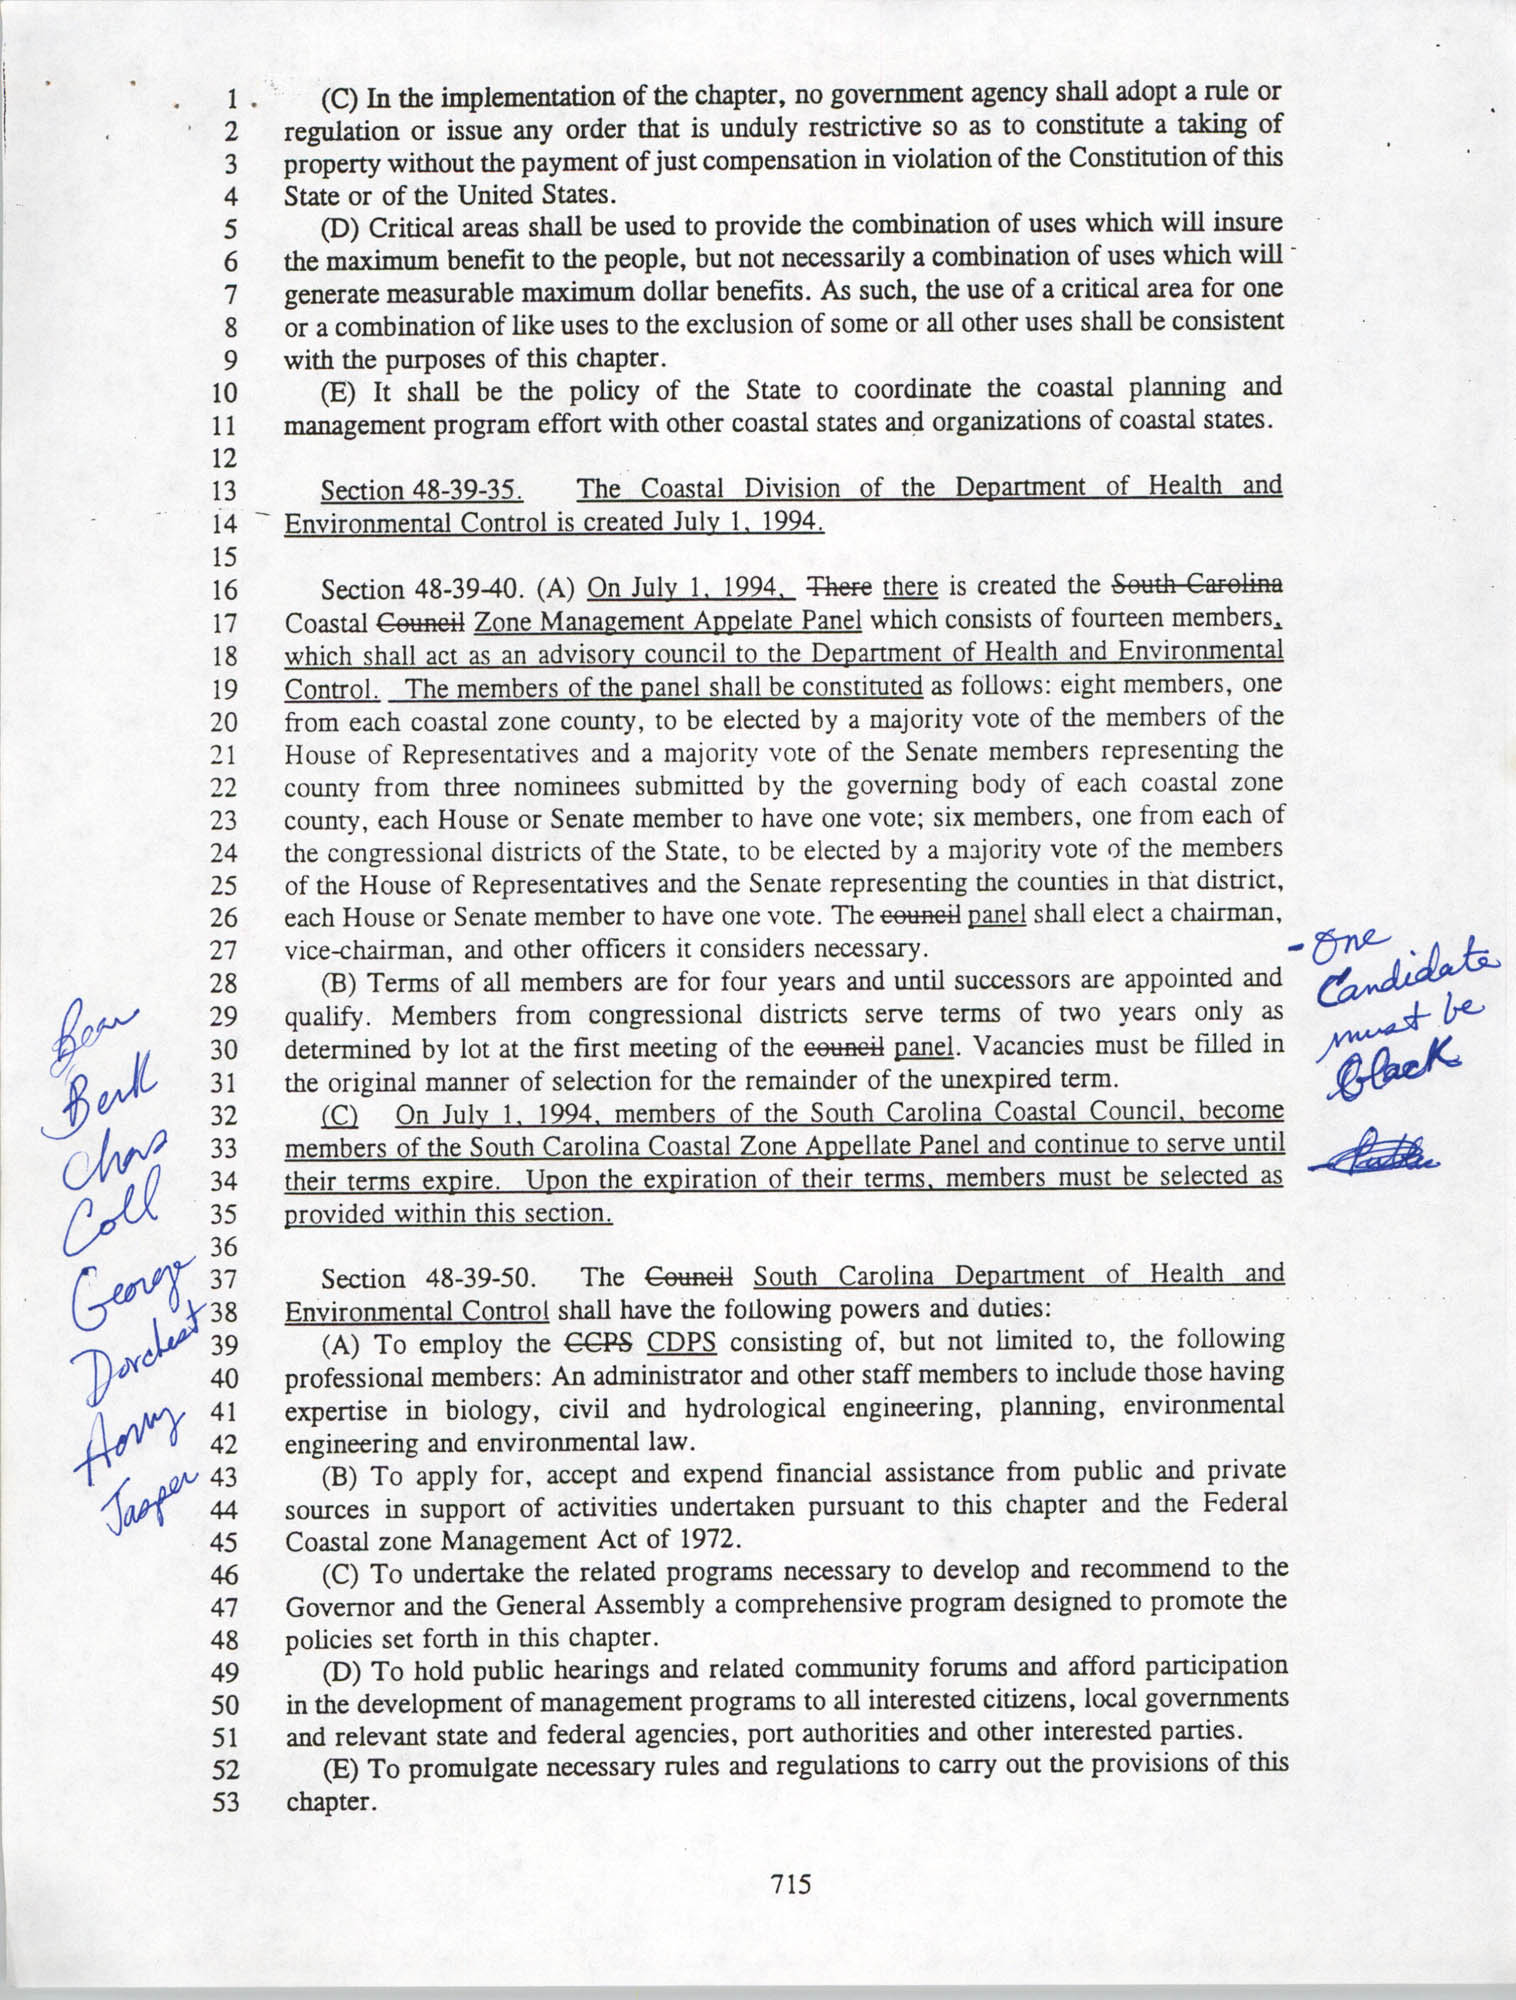 Restructuring Bill, Page 715